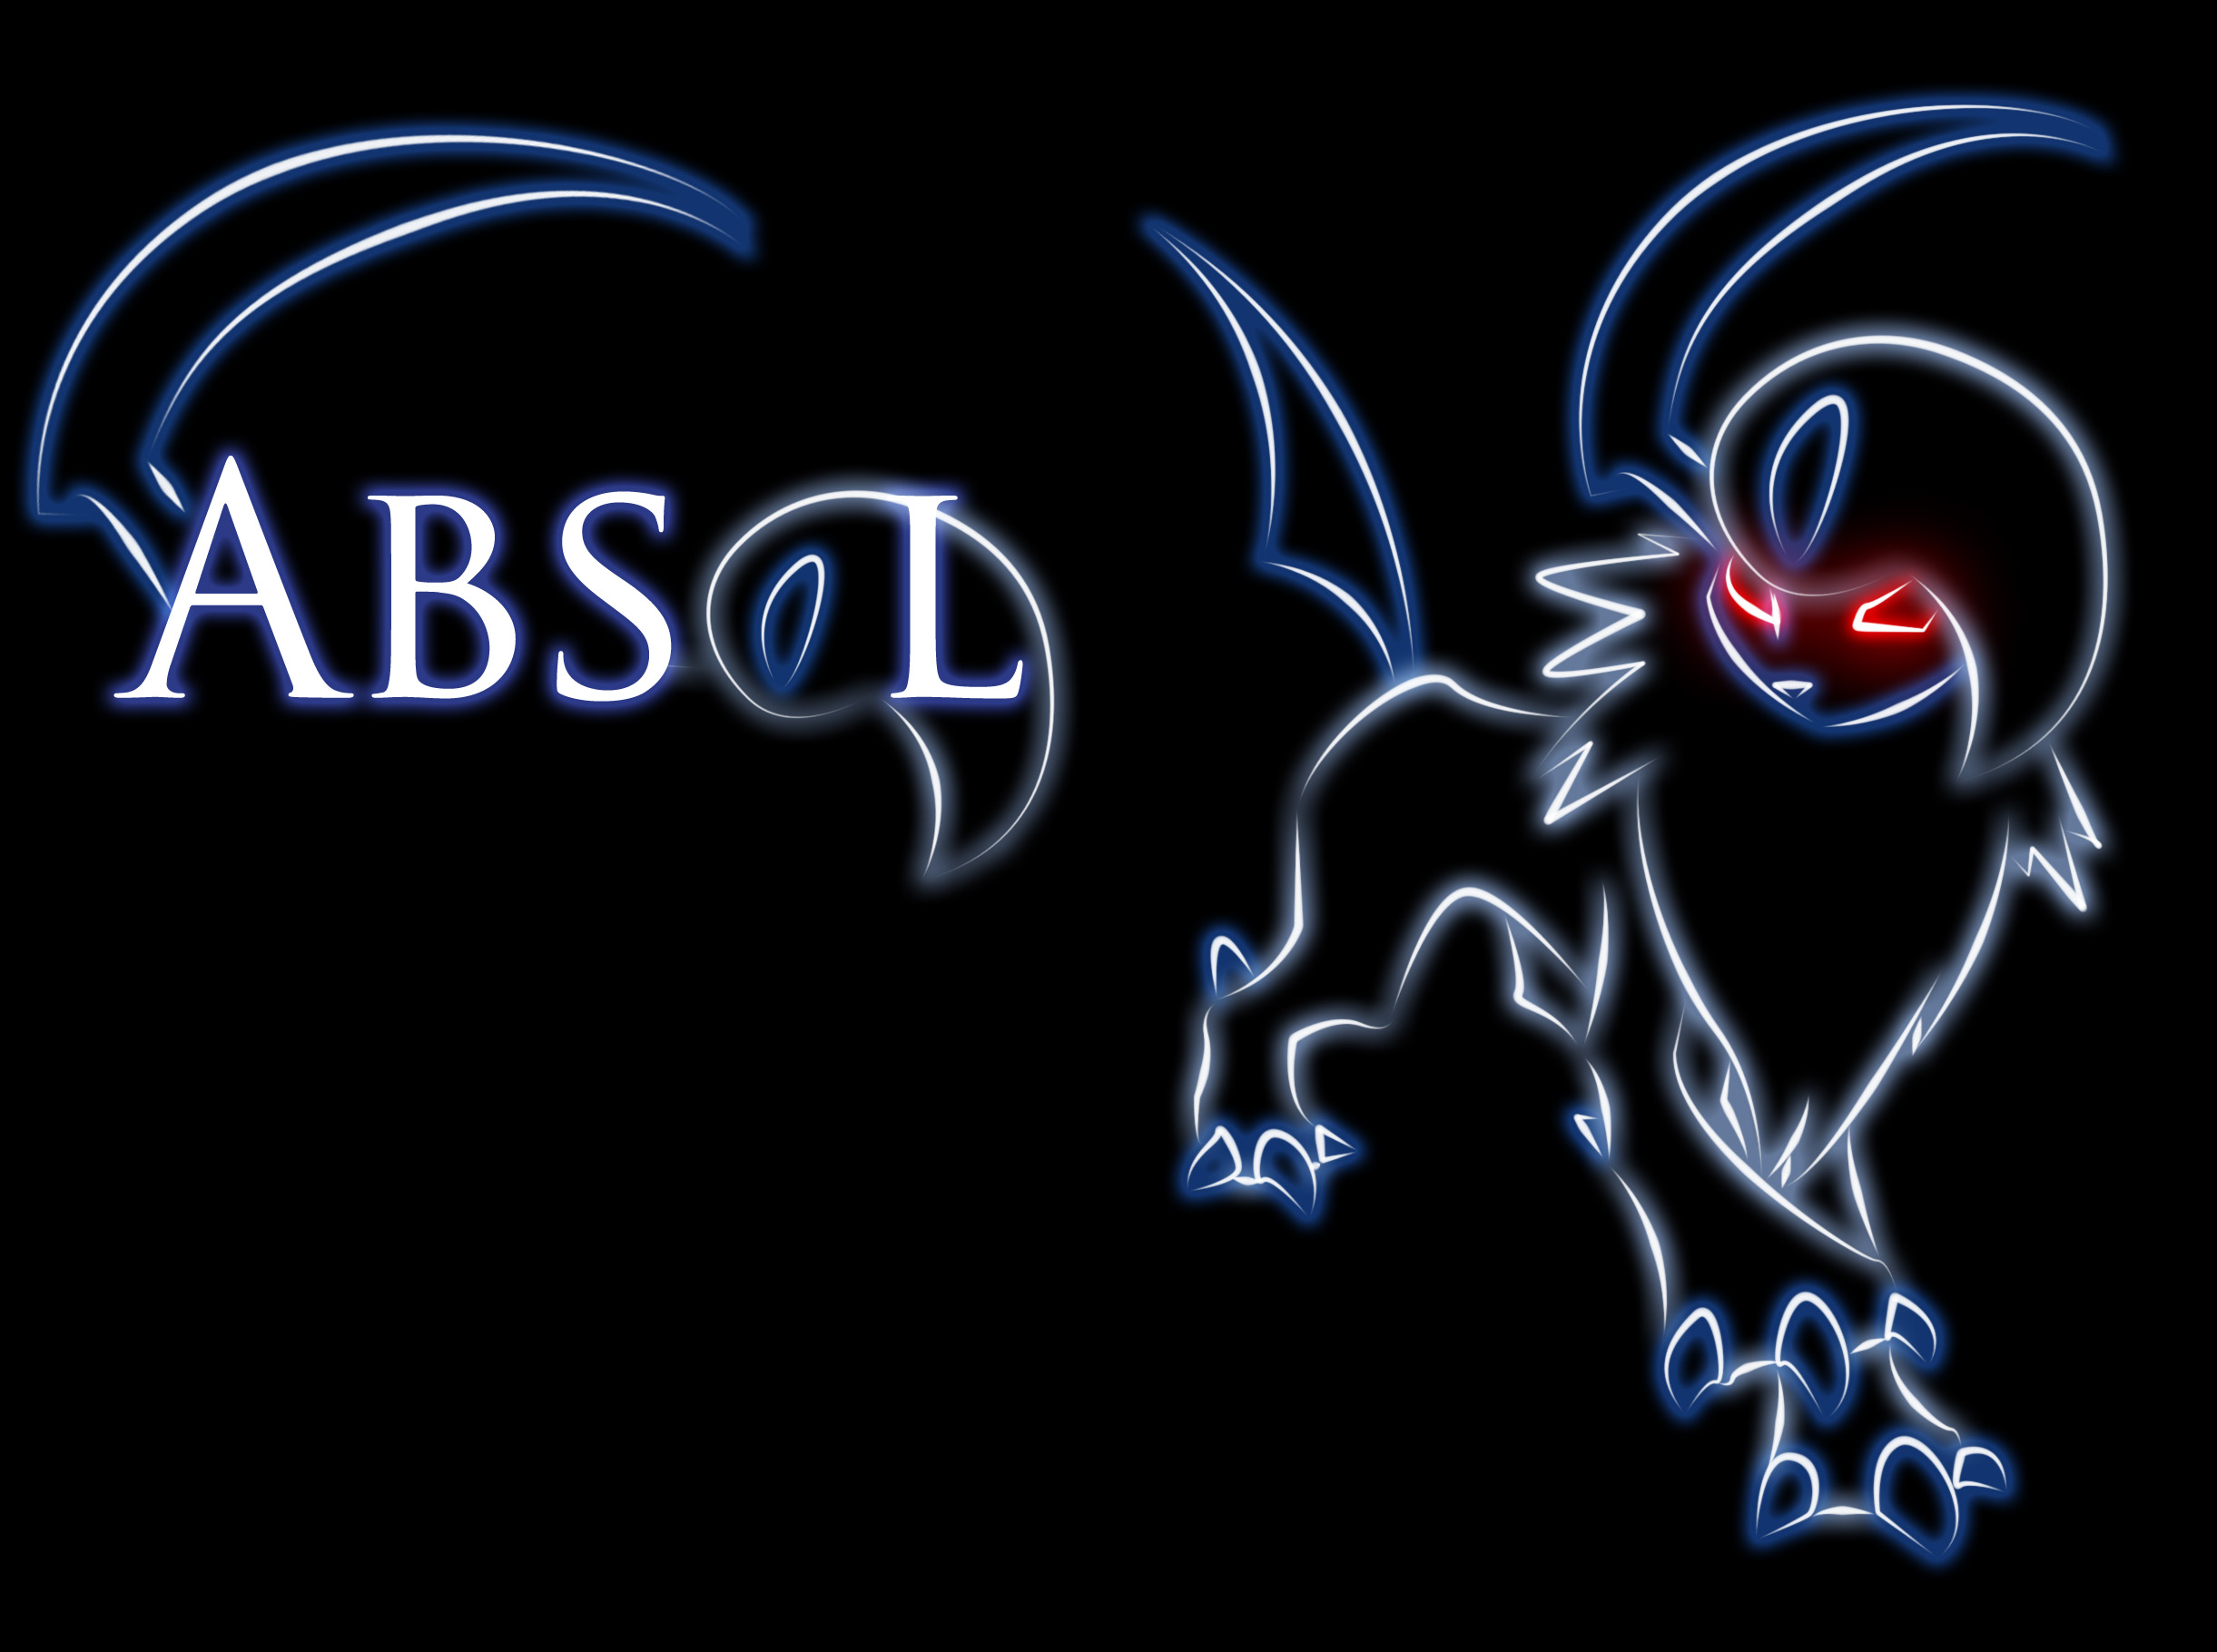 Absol Wallpaper by buckheadgar on DeviantArt